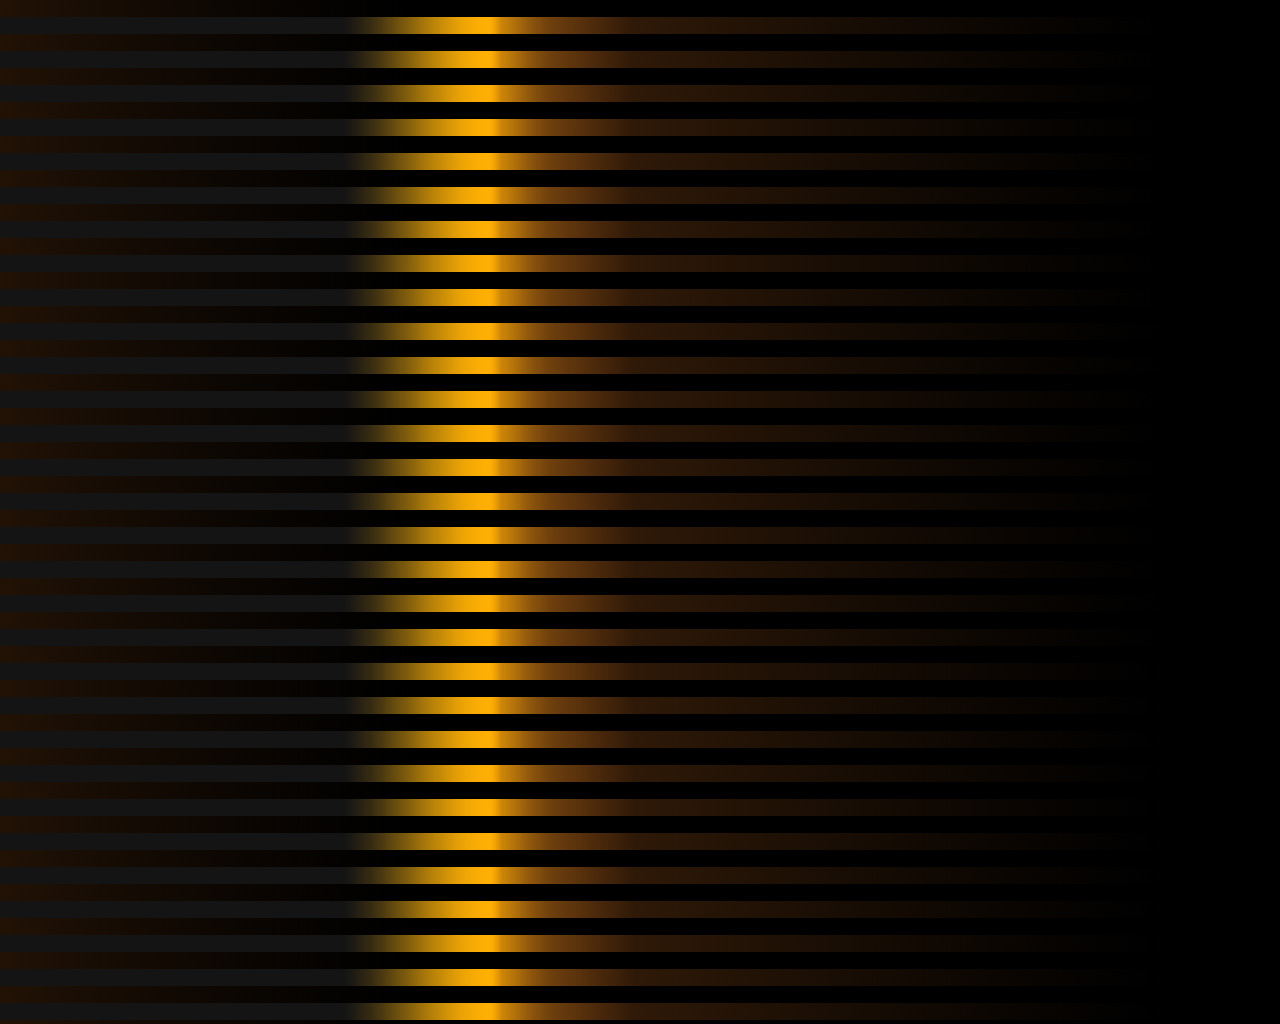 Gold And Black Striped Wallpaper Stripe pattern   half black 1280x1024